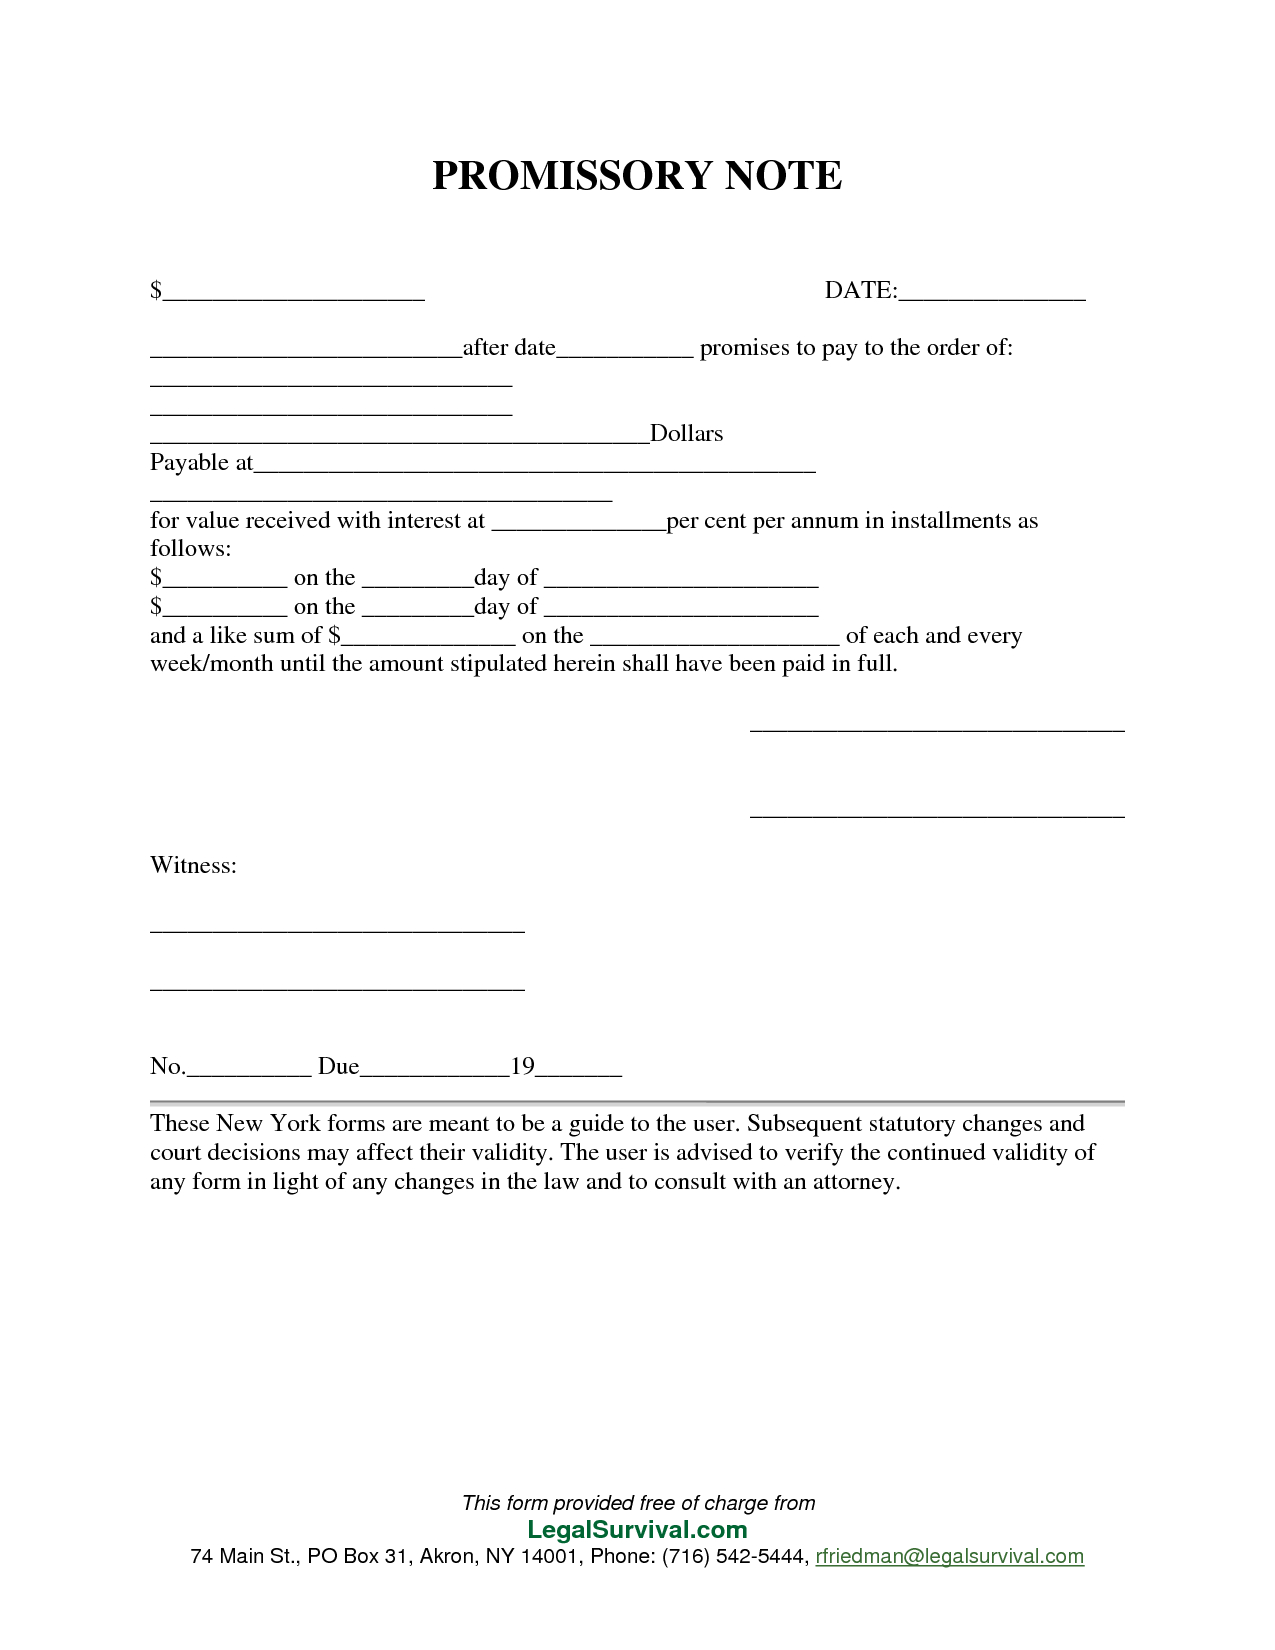 Permalink To Free Promissory Note Template | Templates, Printables - Free Printable Promissory Note